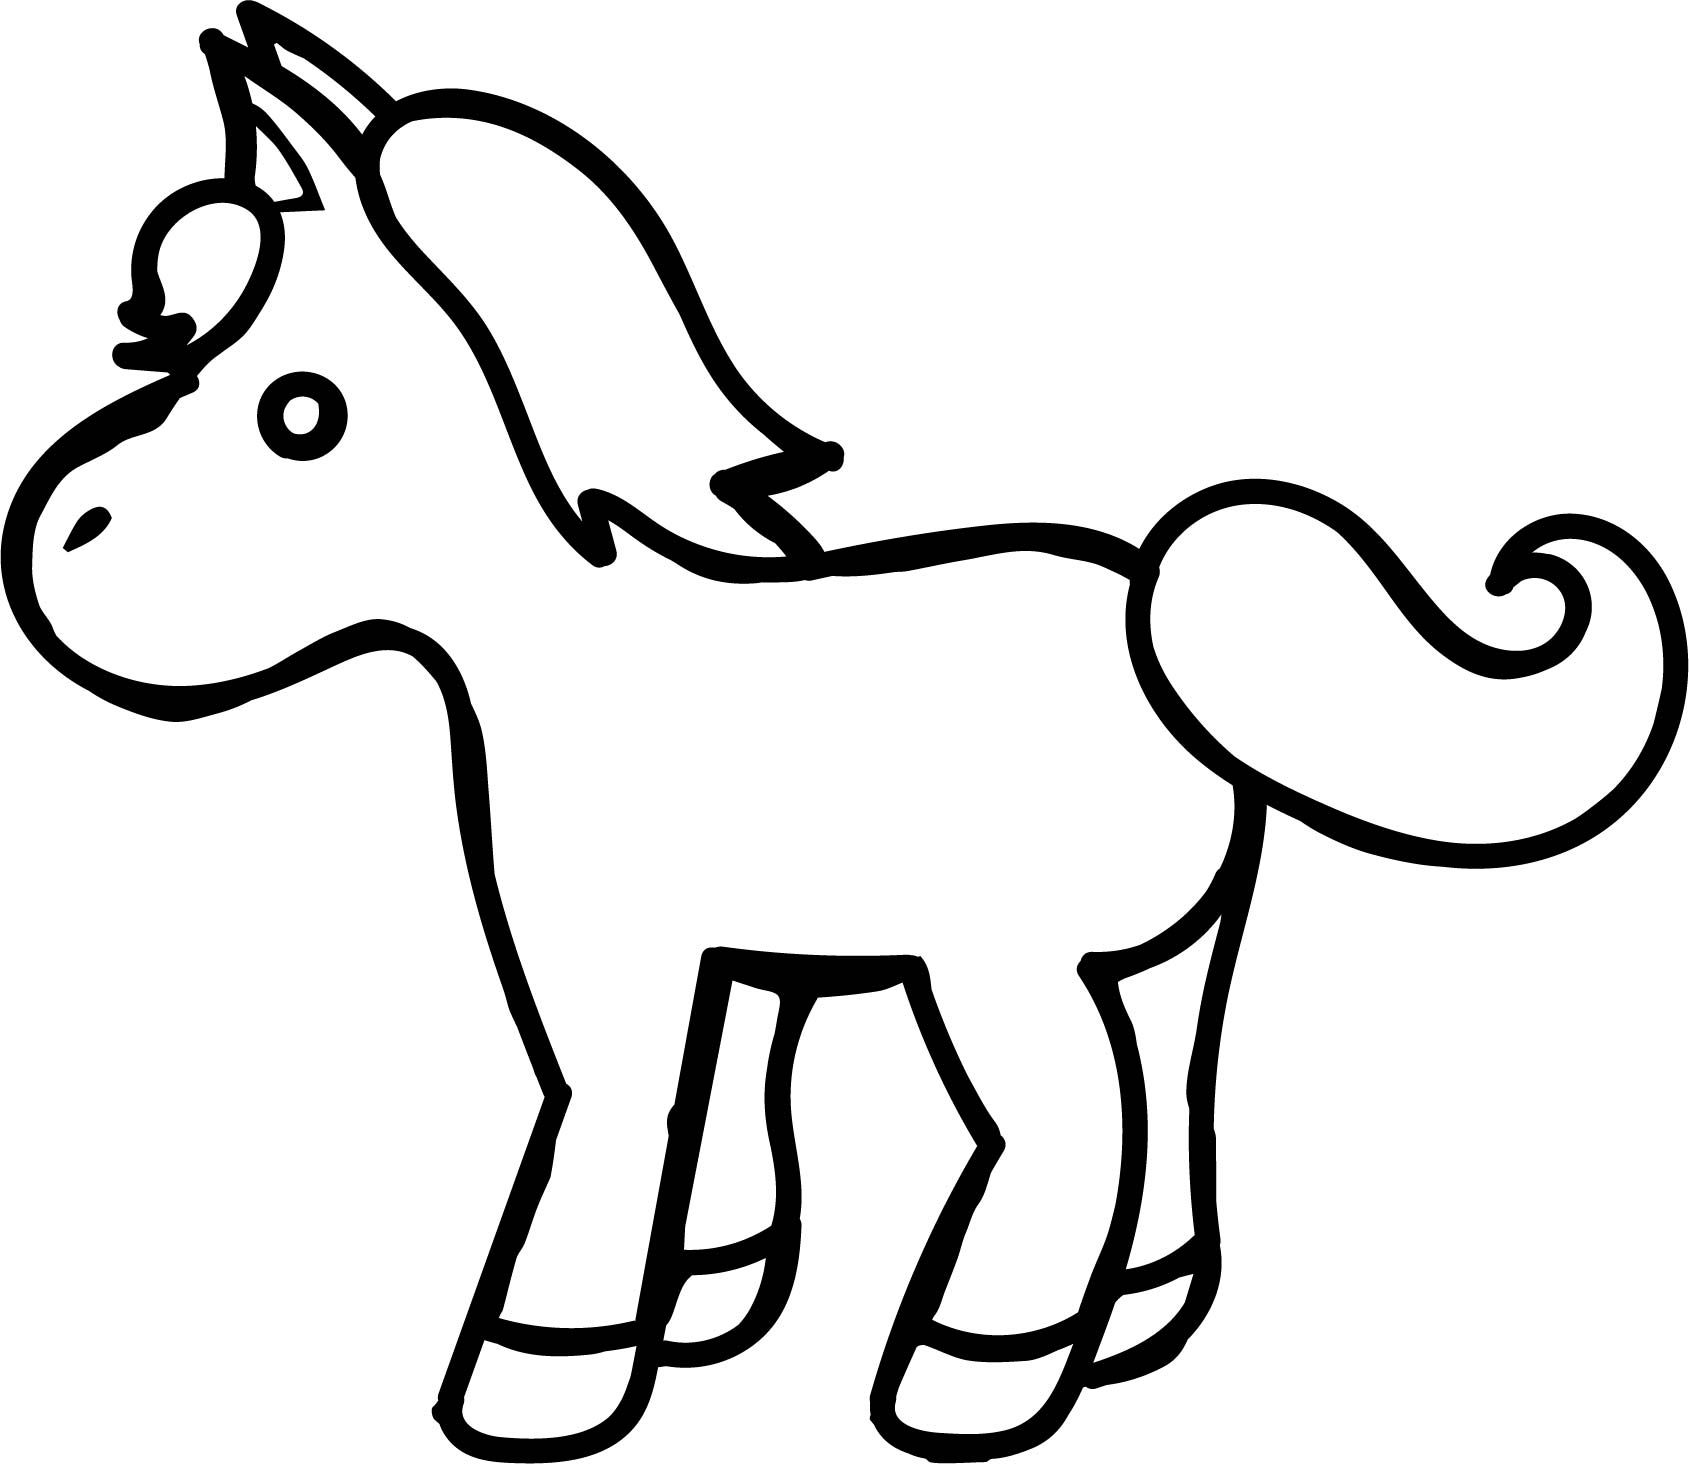 Awesome Small Cartoon Horse Coloring Page Horse Coloring Horse Coloring Pages Animal Coloring Pages [ 1464 x 1689 Pixel ]